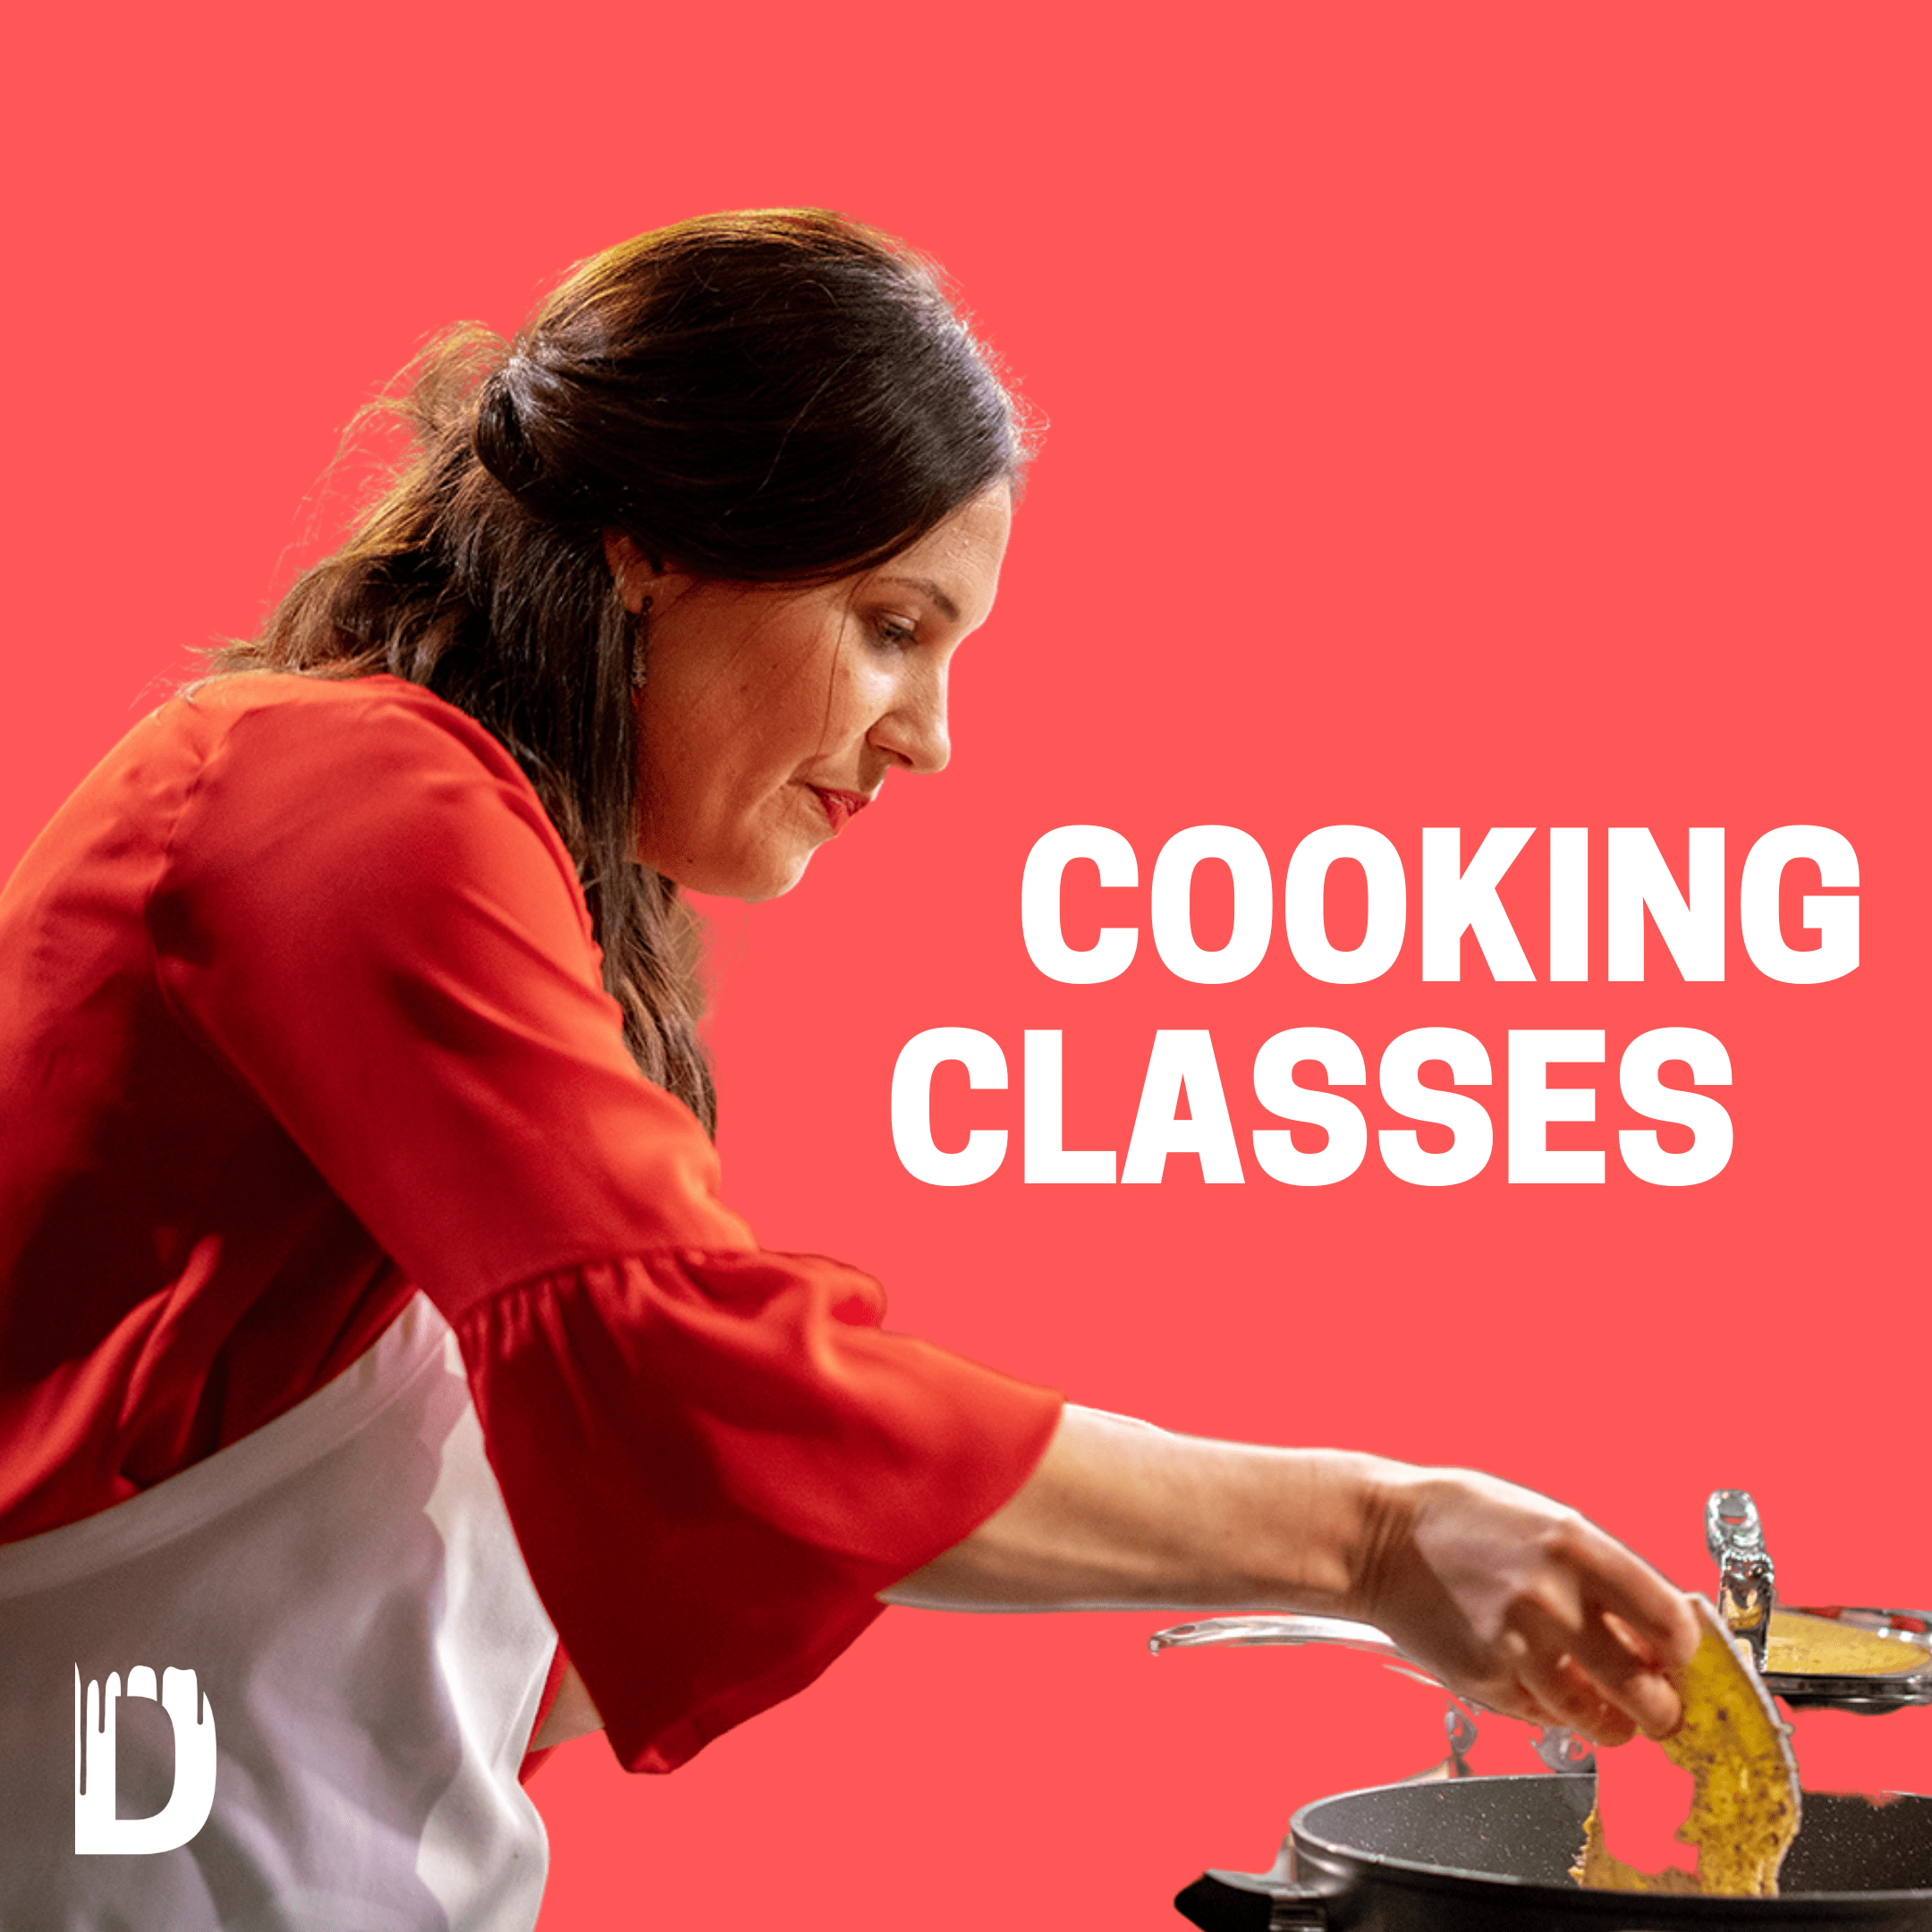 Nadia Fragnito teams up with Drool for online cooking classes